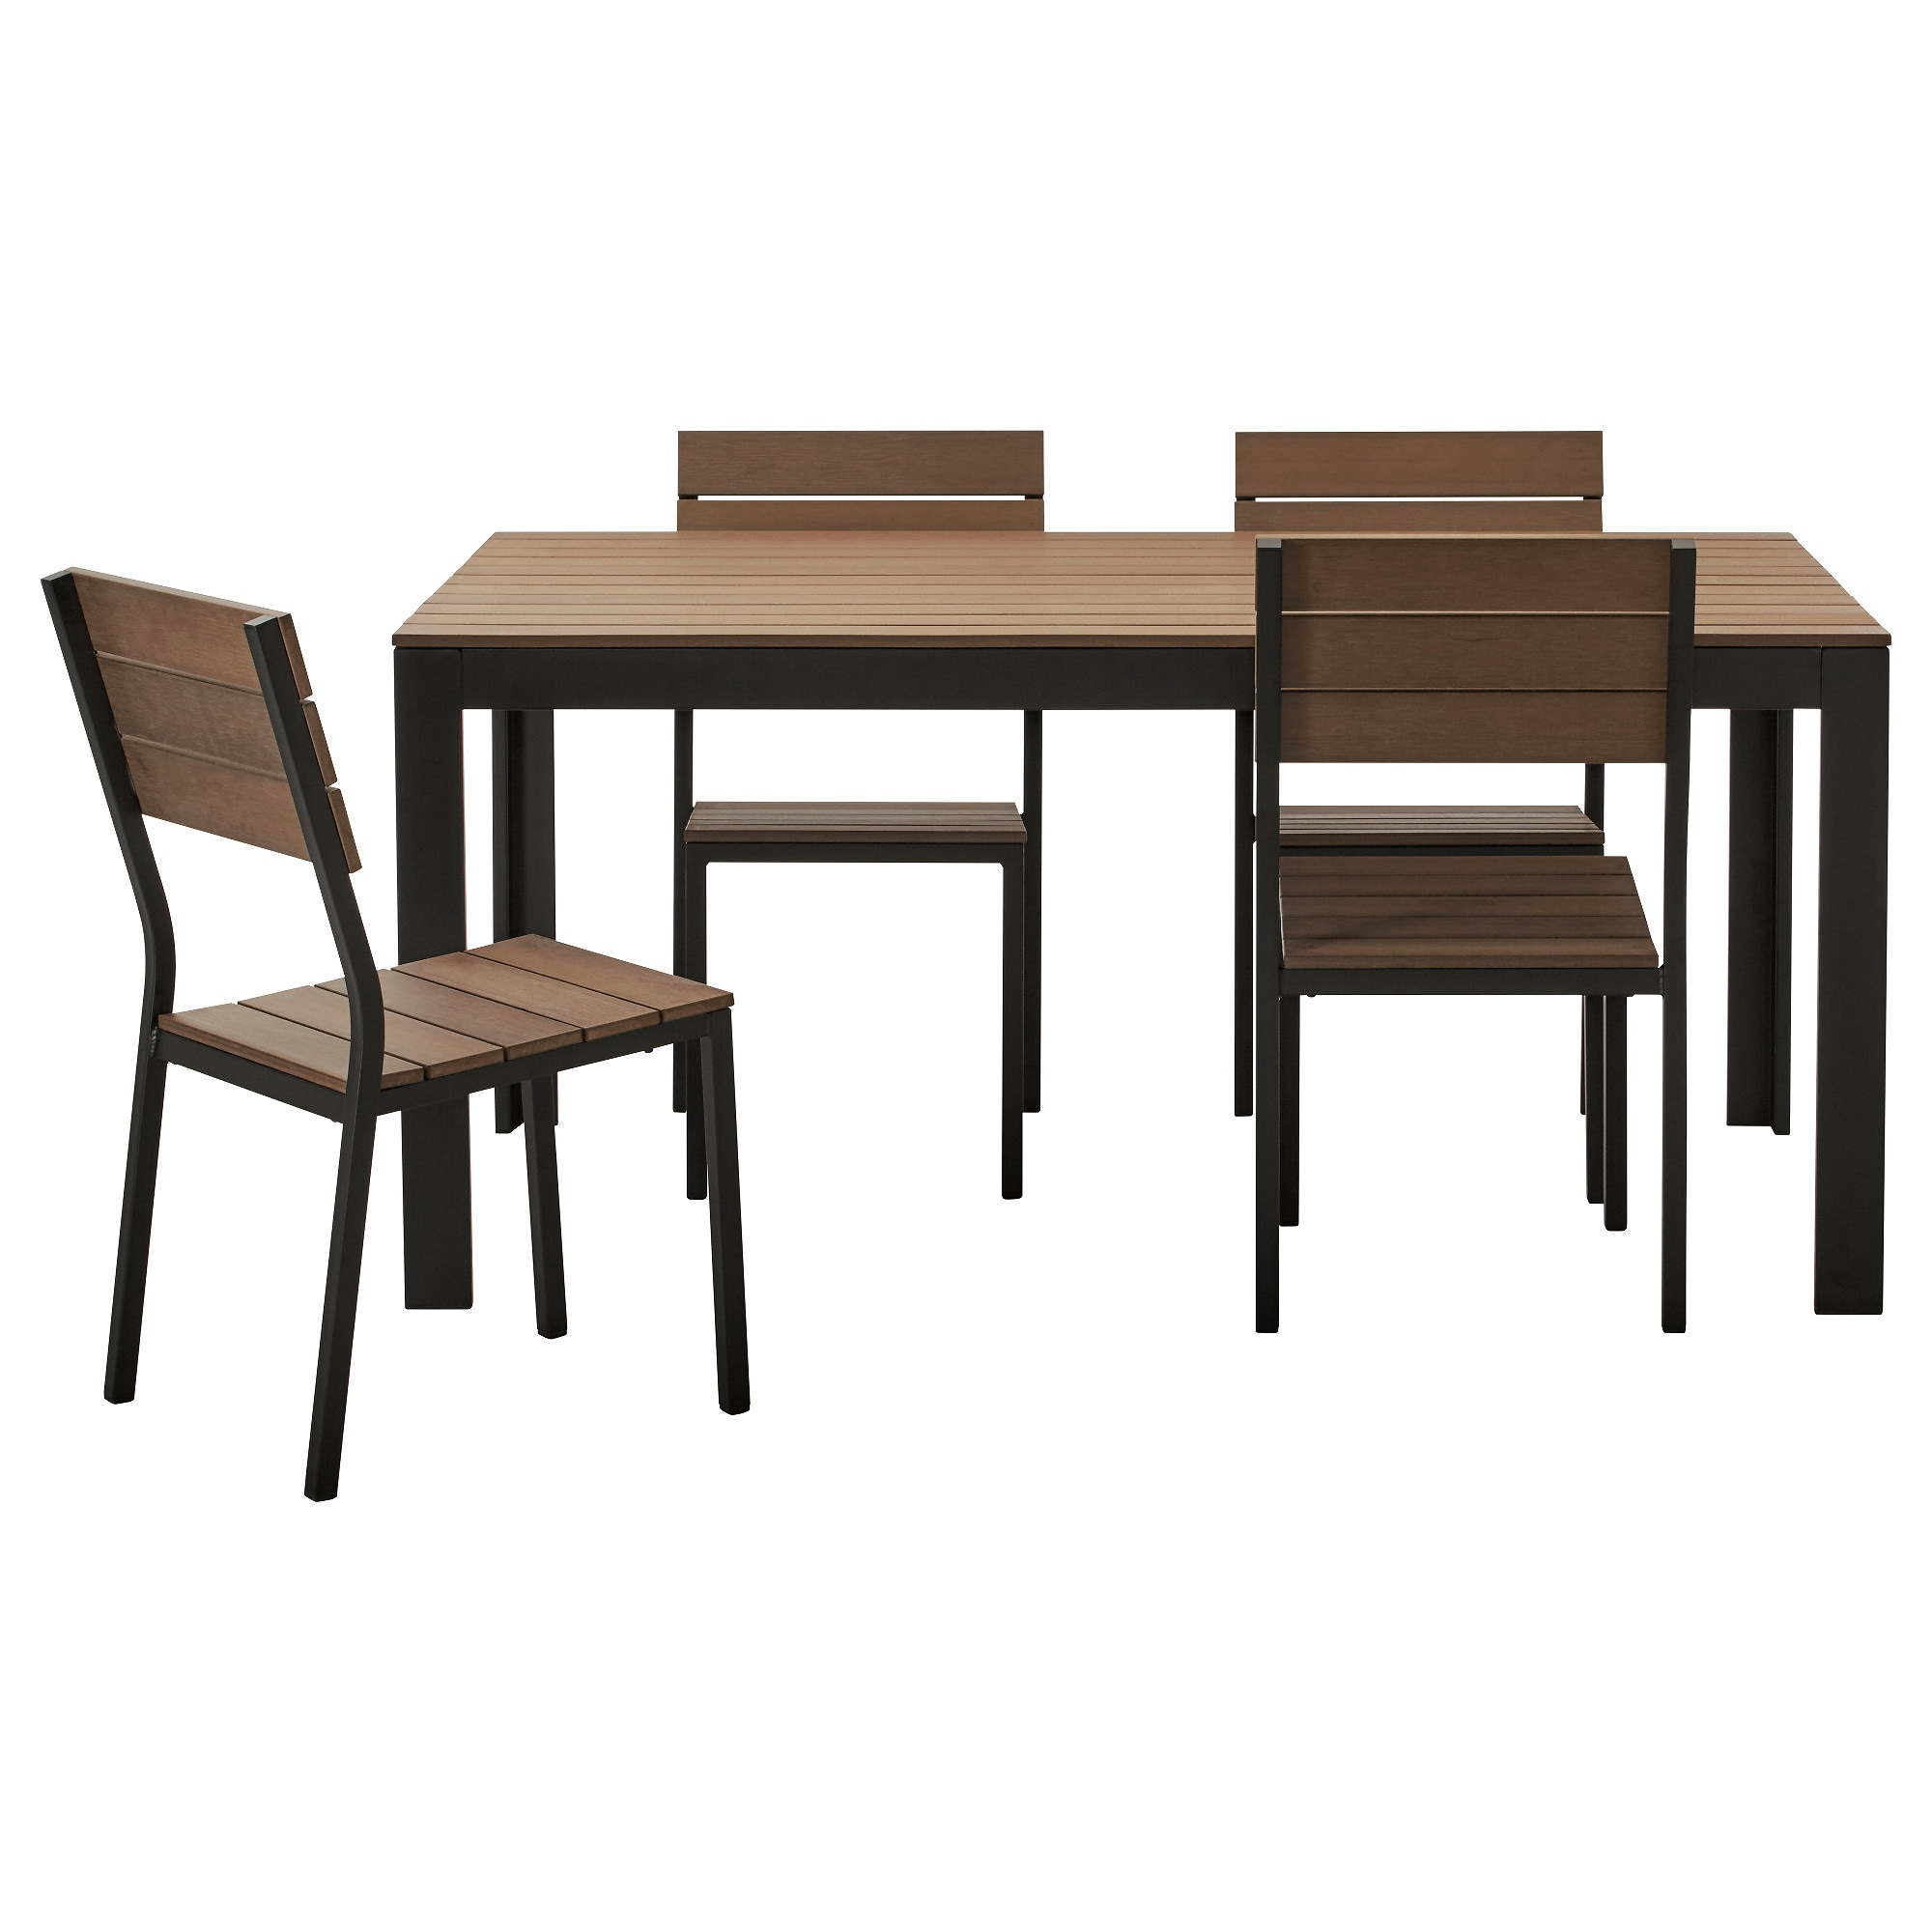 Charmant FALSTER Table+4 Chairs, Outdoor, Black, Brown